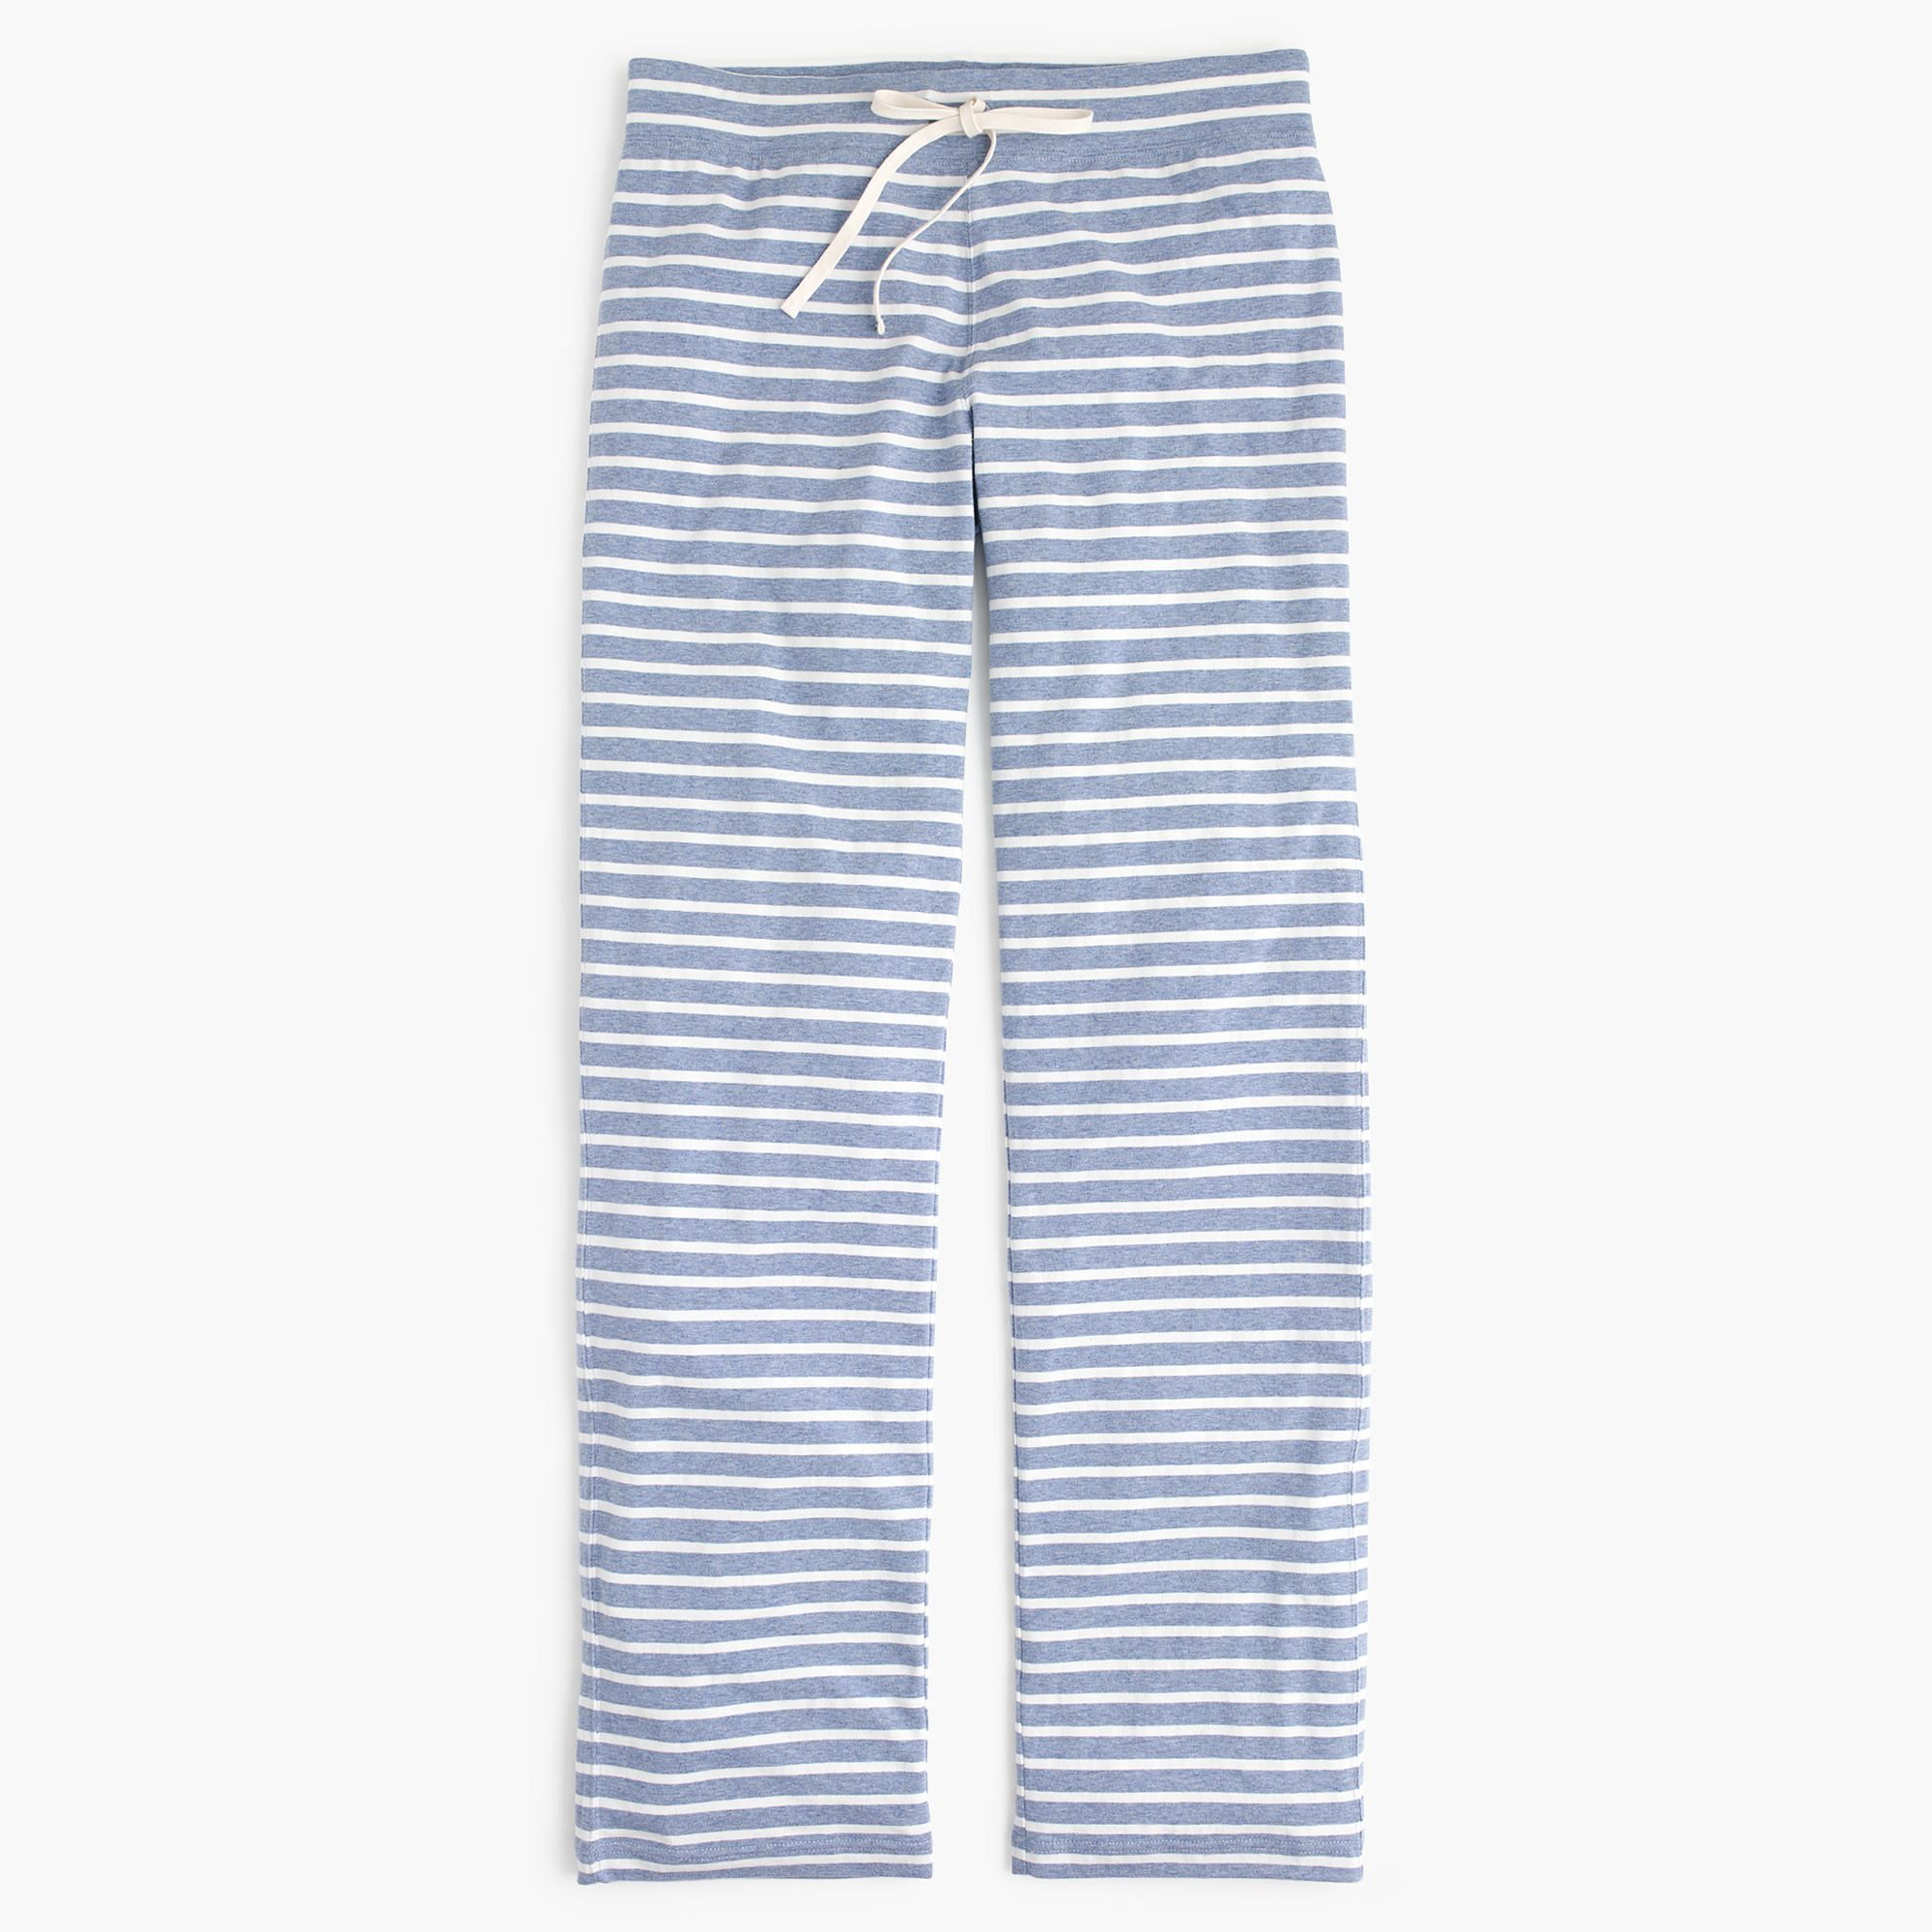 Dreamy Cotton Pant In Stripe Cotton Pants Pj Pants Pants